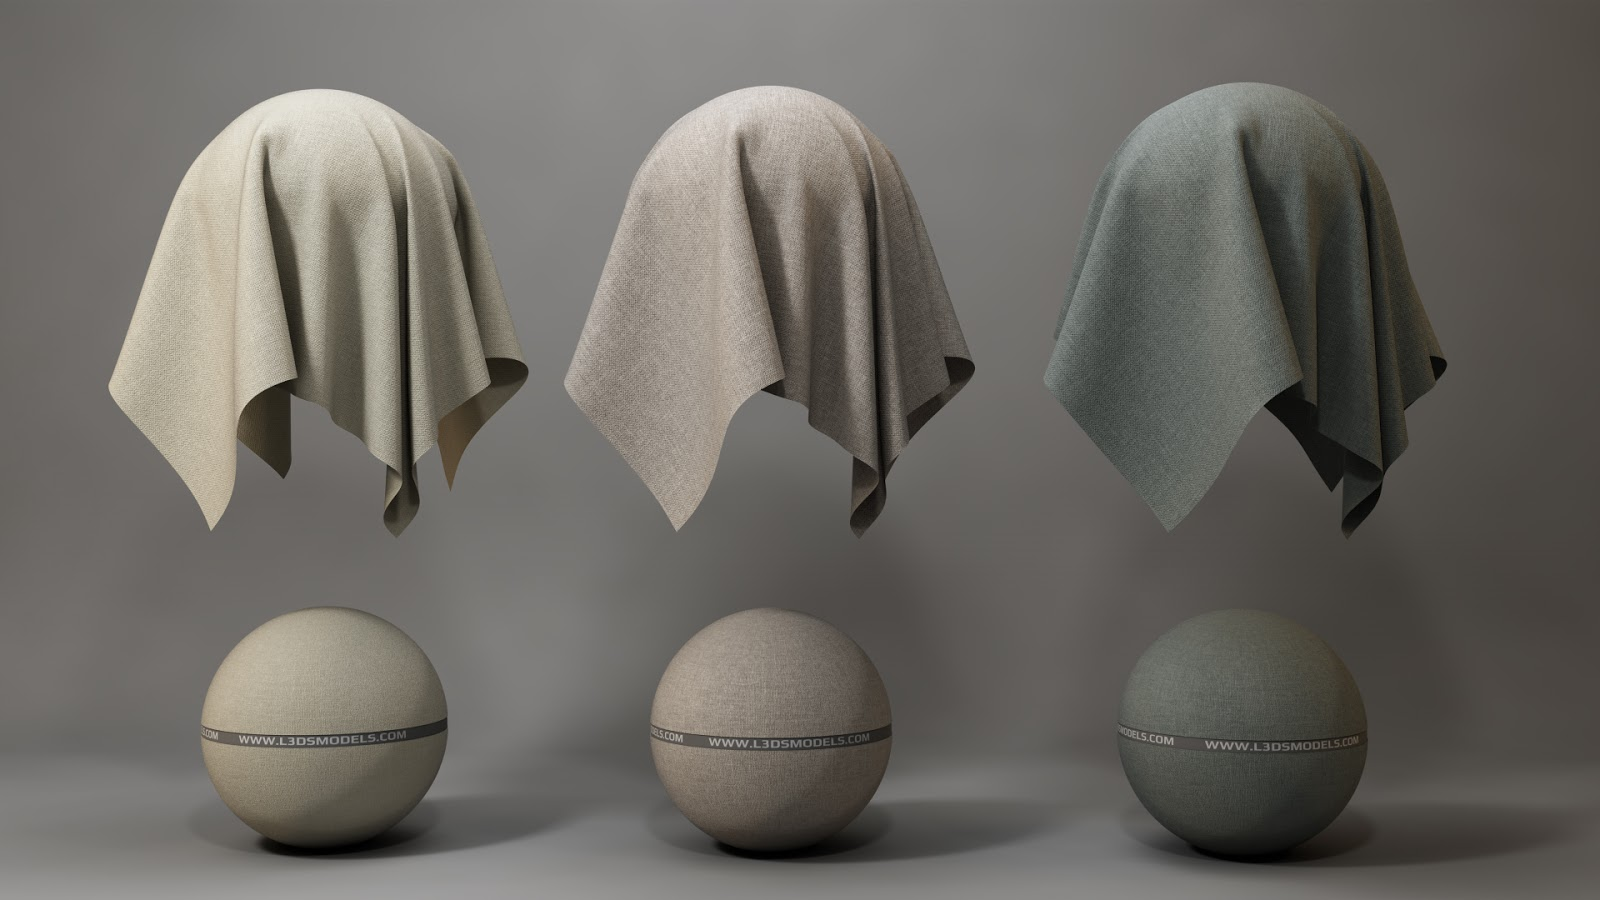 Vfx 3D Models : DOWNLOAD FABRIC TEXTURE FOR 3DS MAX , GOOGLE